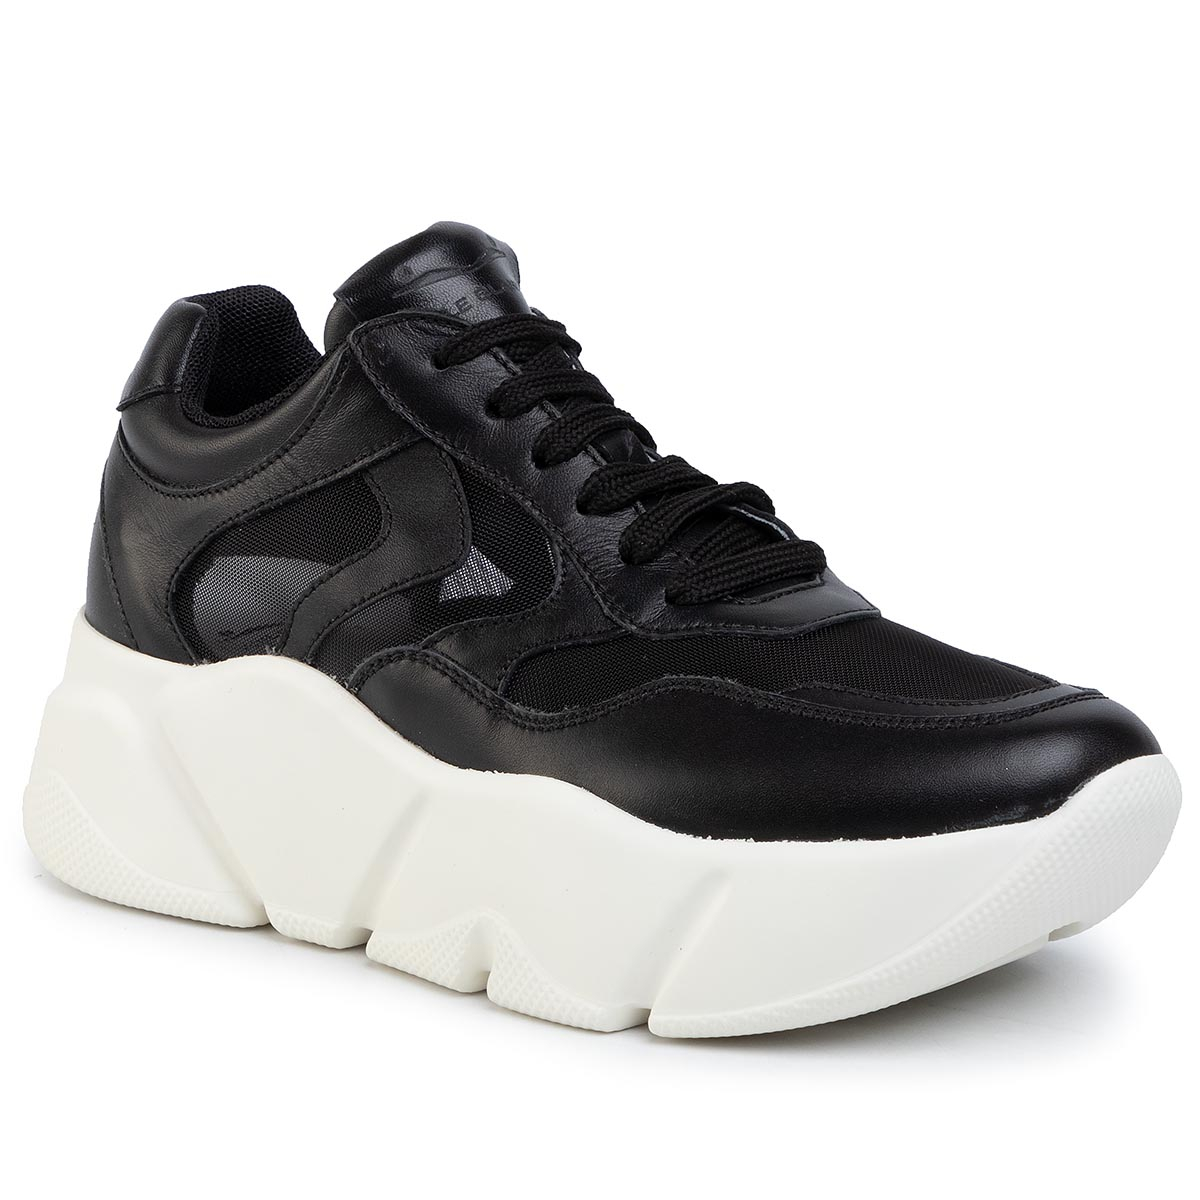 Sneakers VOILE BLANCHE - Monster Mesh 0012013592.02.0A01 Nero